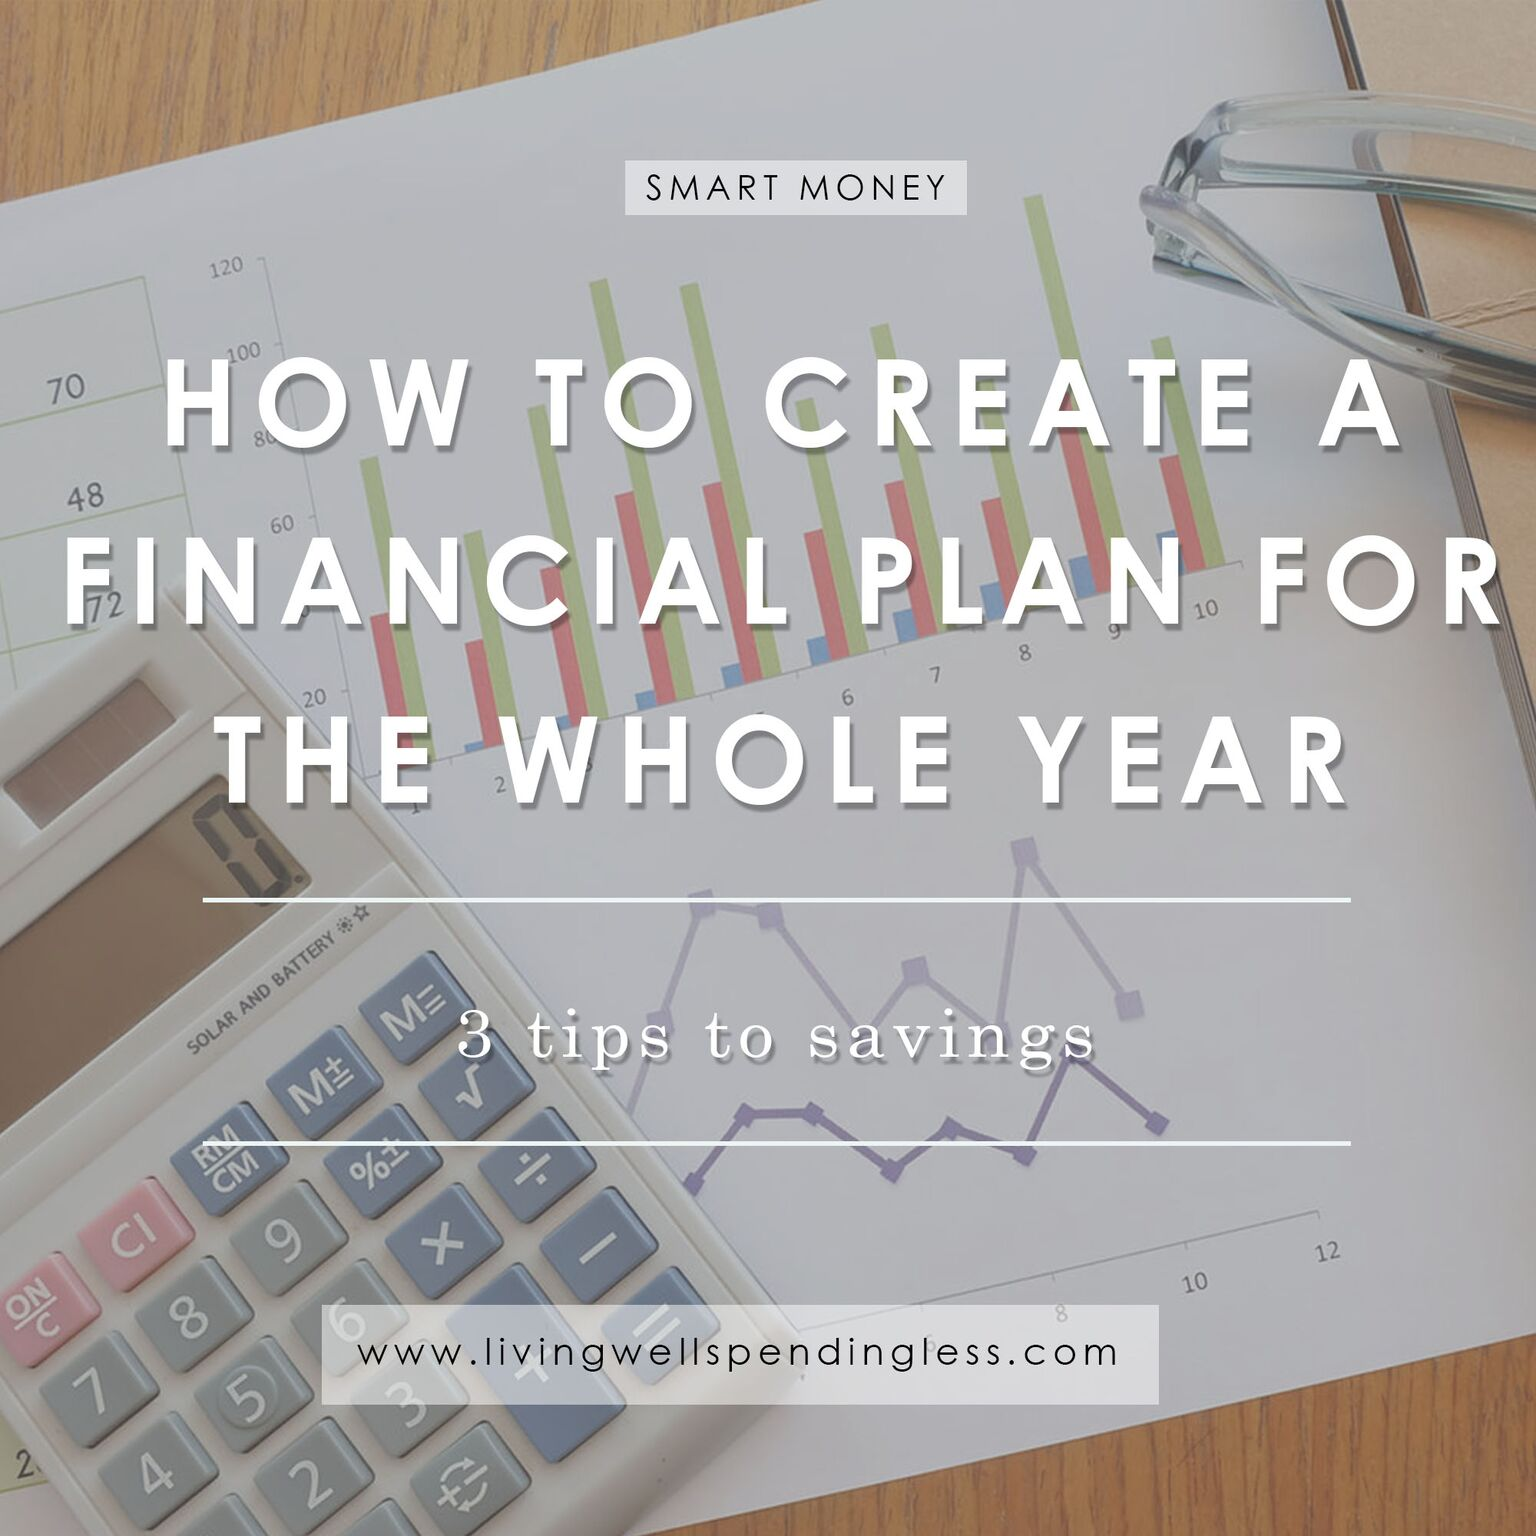 How to Create a Financial Plan for February | Smart Money Series | 3 Easy Steps to Save More Money | Financial Planning Made Easy